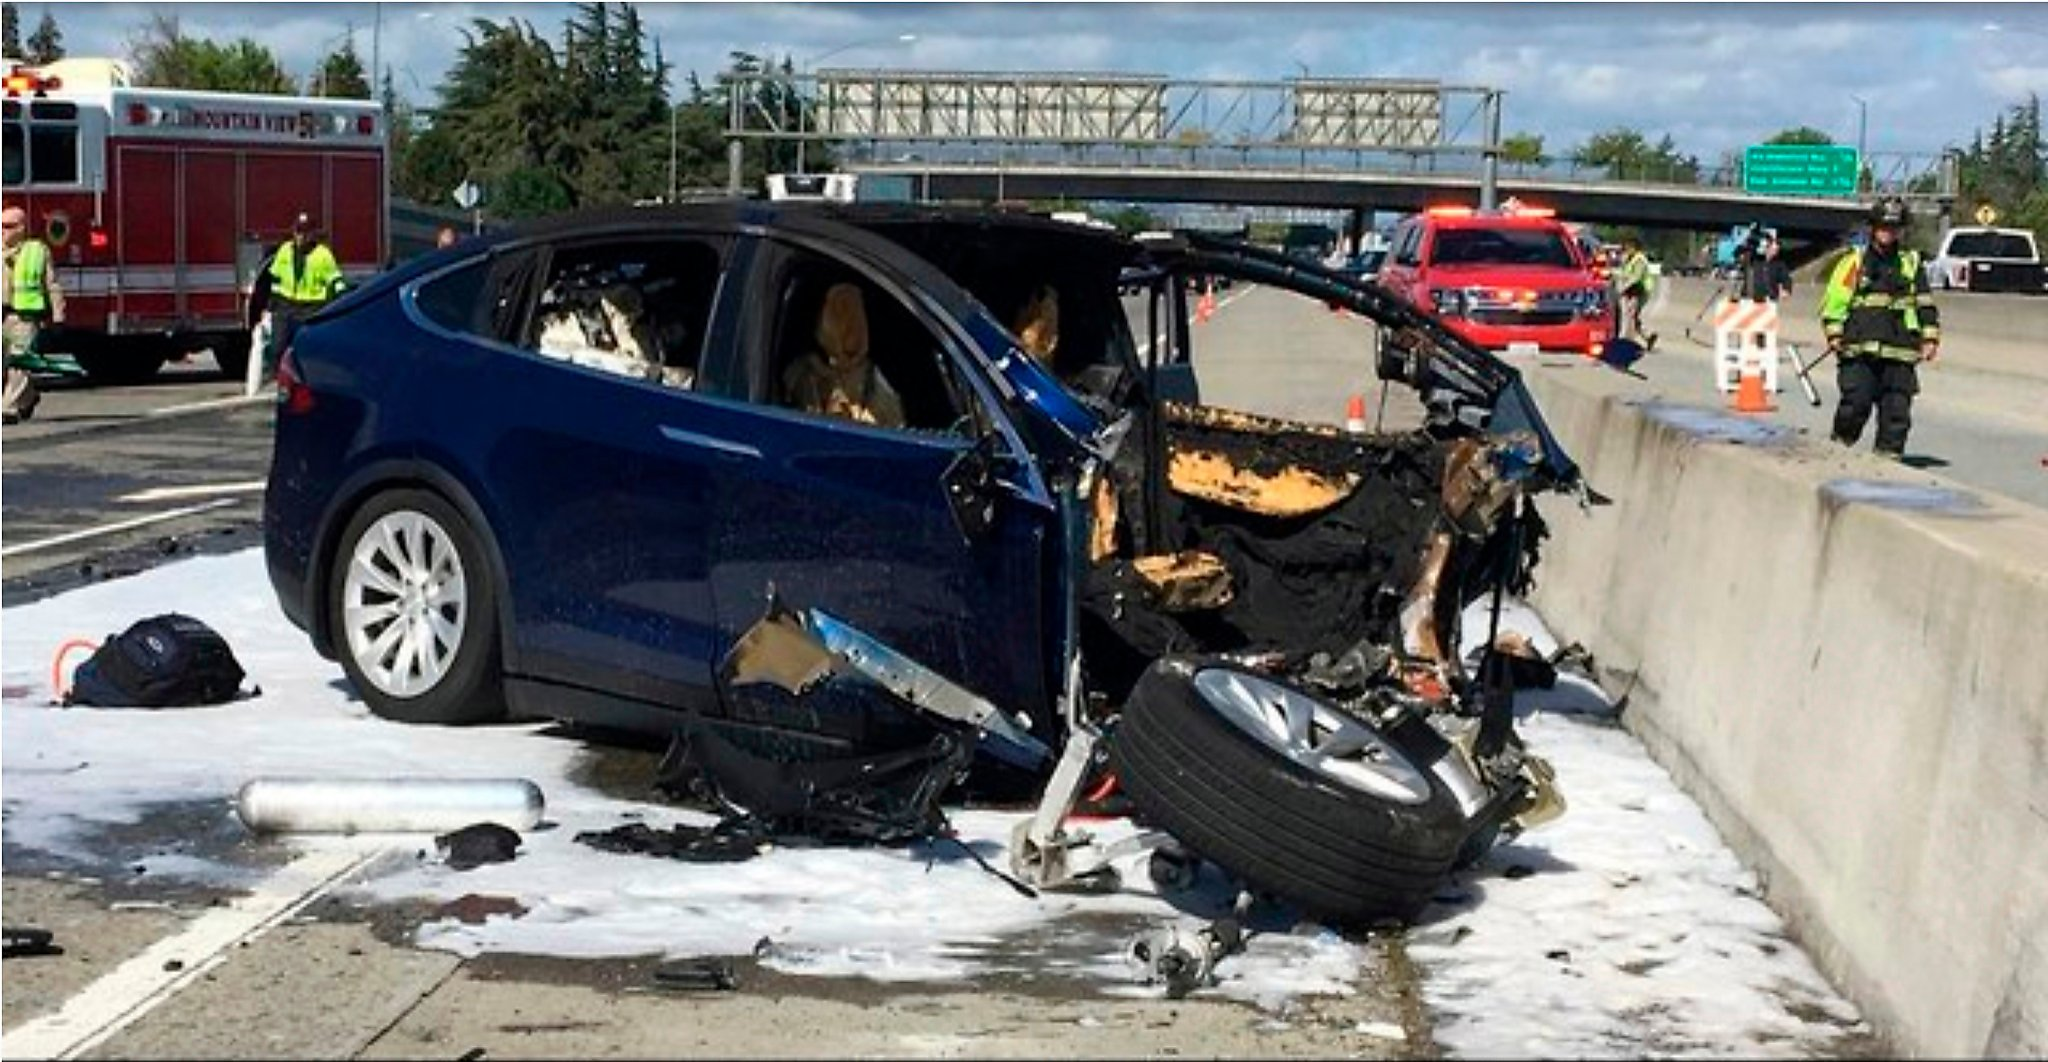 Tesla model x accelerated seconds before highway 101 crash report tesla model x accelerated seconds before highway 101 crash report finds sfchronicle malvernweather Gallery